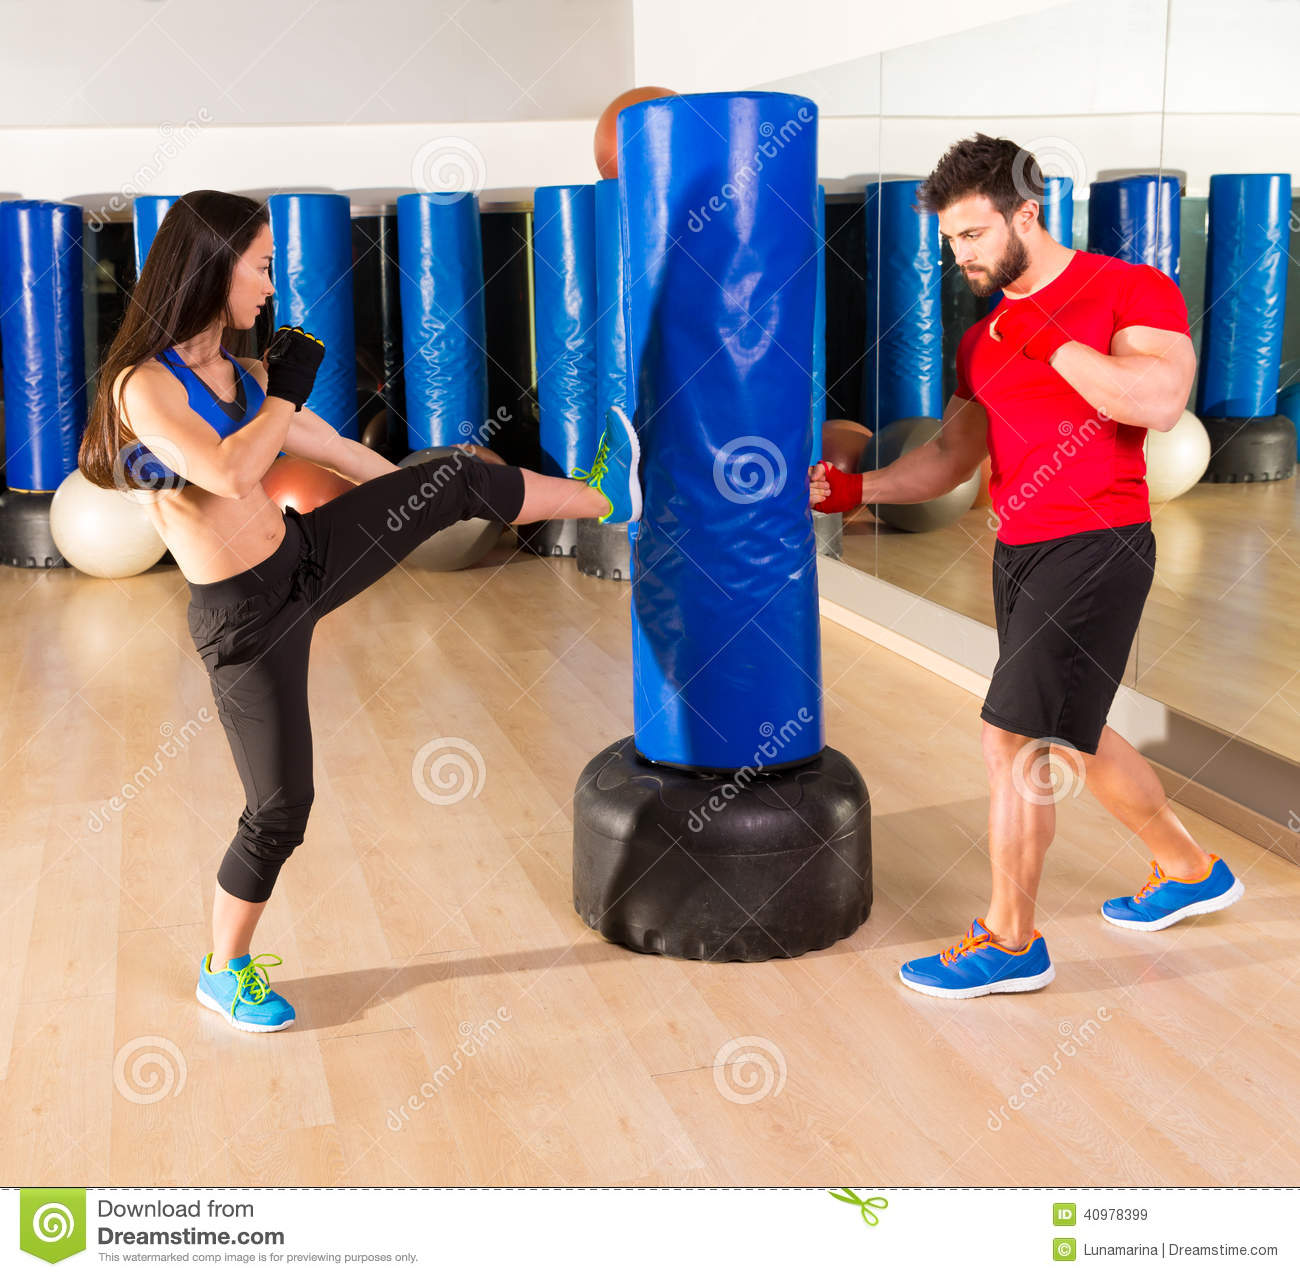 Aerobox – the Ultimate Boxing Workout